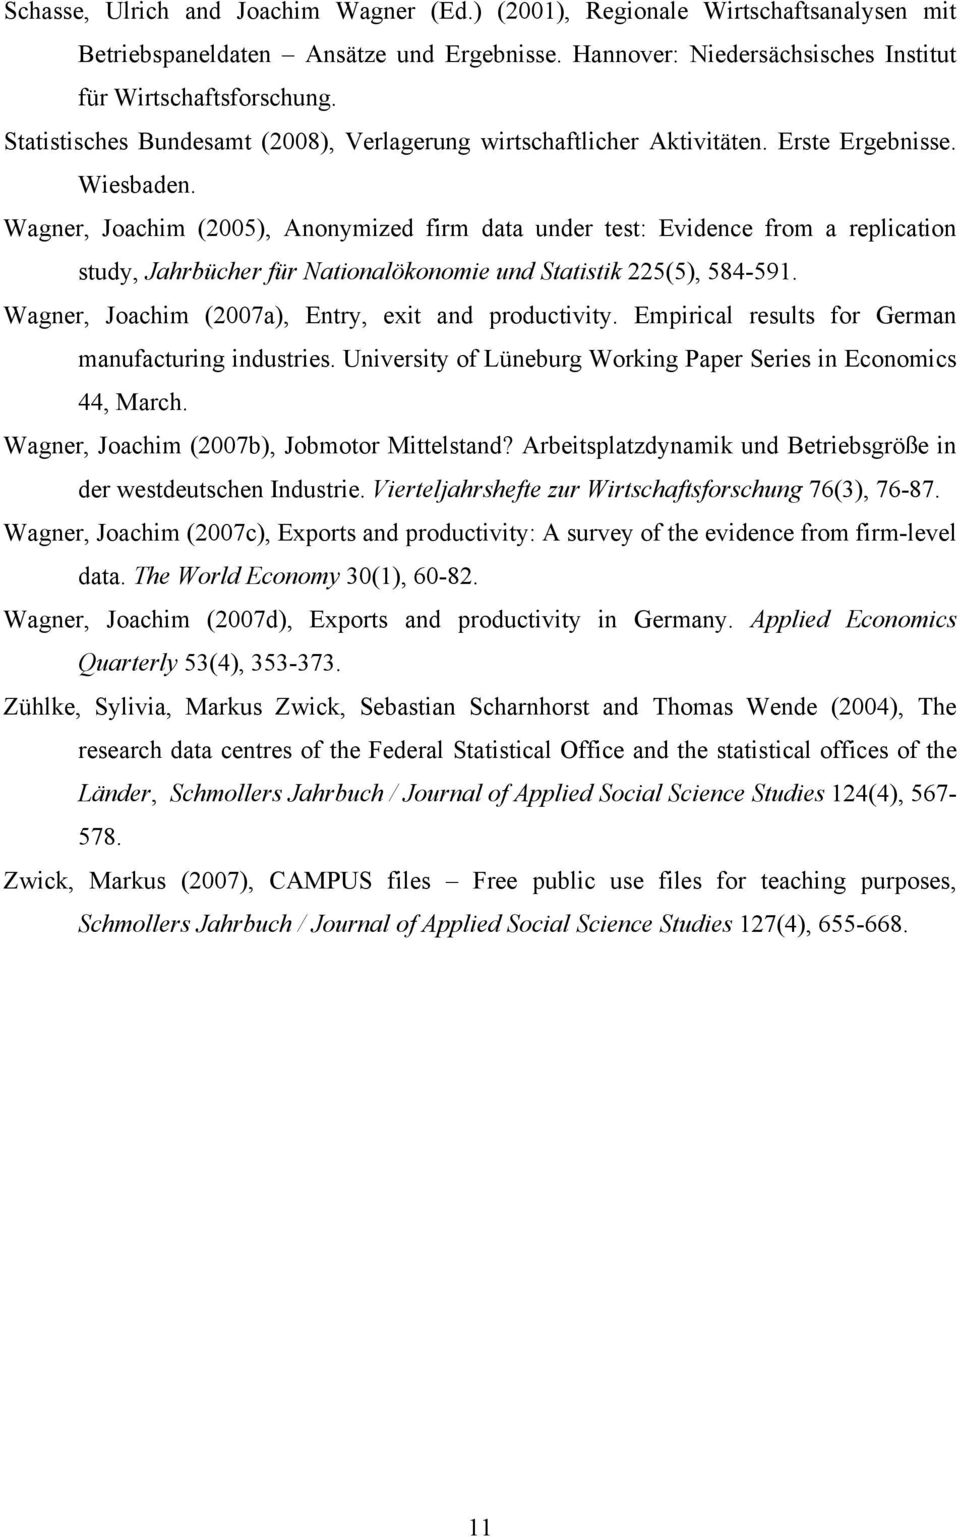 Wagner, Joachim (2005), Anonymized firm data under test: Evidence from a replication study, Jahrbücher für Nationalökonomie und Statistik 225(5), 584-591.